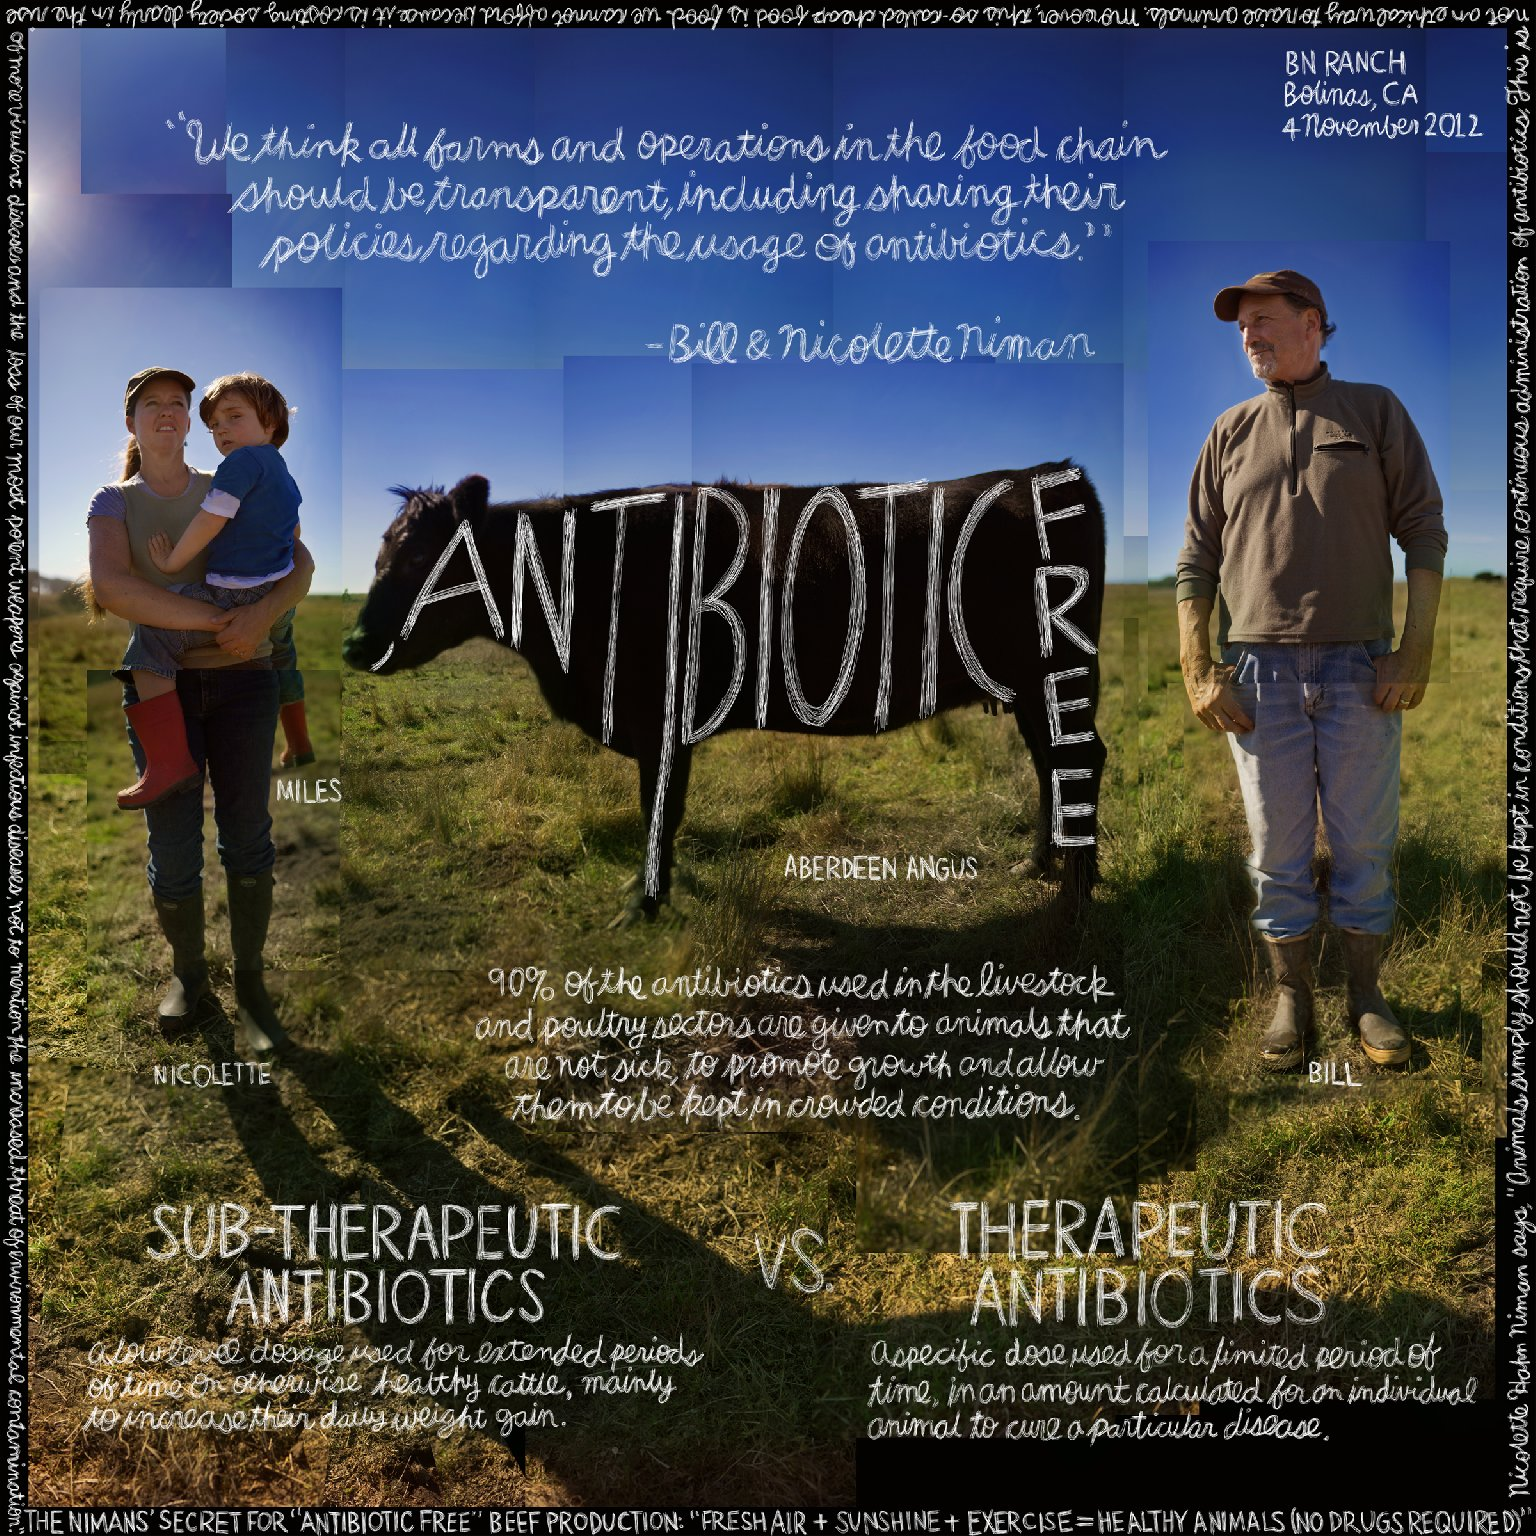 """The Lexicon of Sustainability: """"Antibiotic-Free"""" featuring Bill & Nicolette Niman of BN Ranch"""